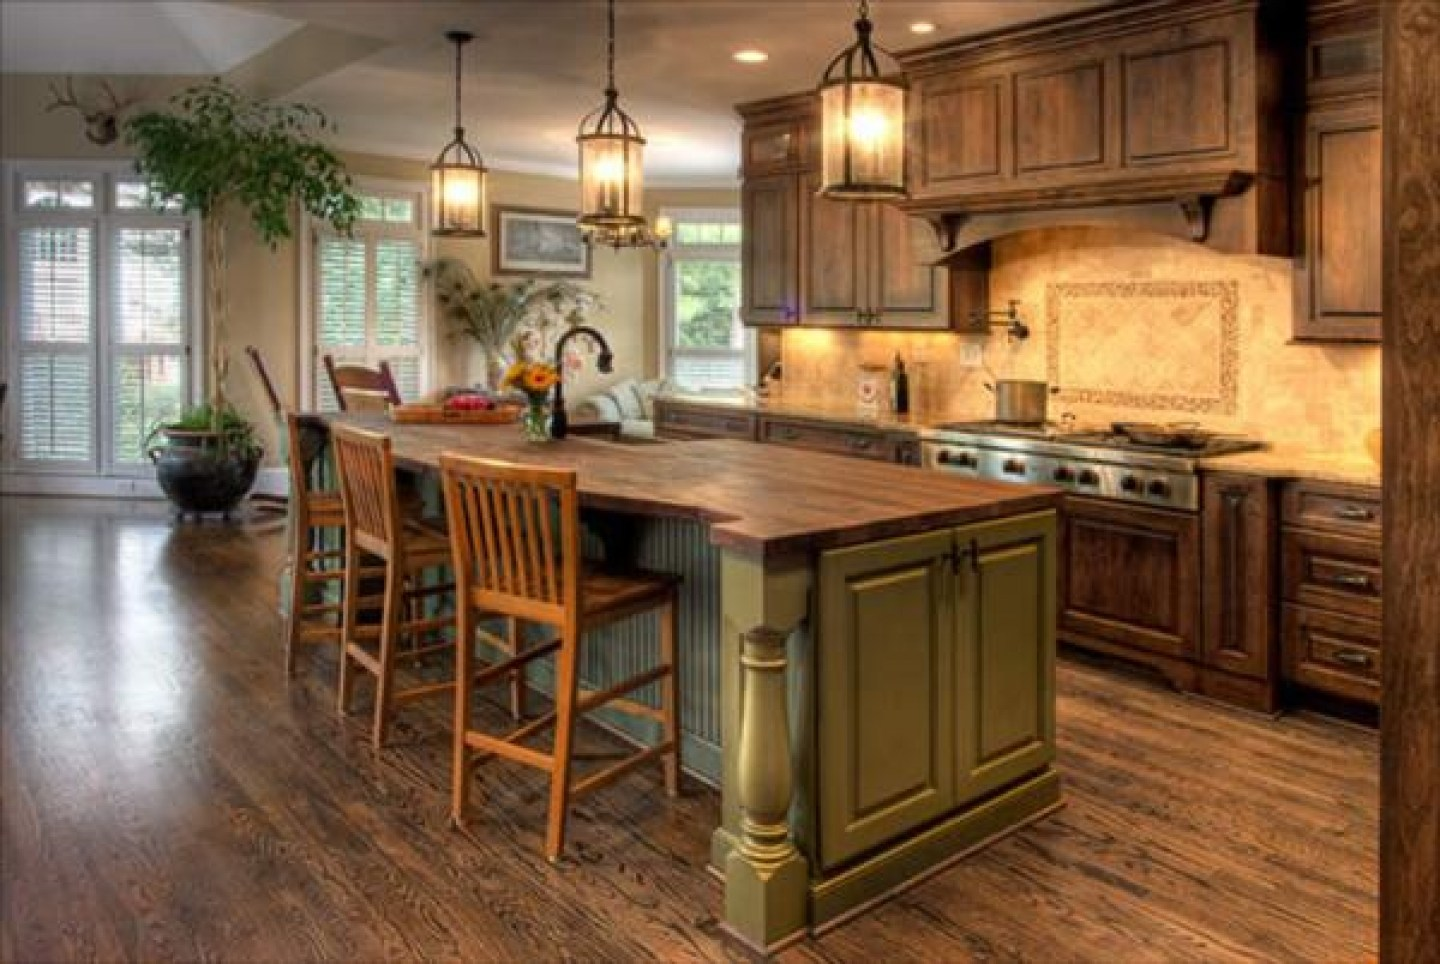 Rustic Small Kitchen Design Ideas Small Kitchen Designs With Islands 1440x964